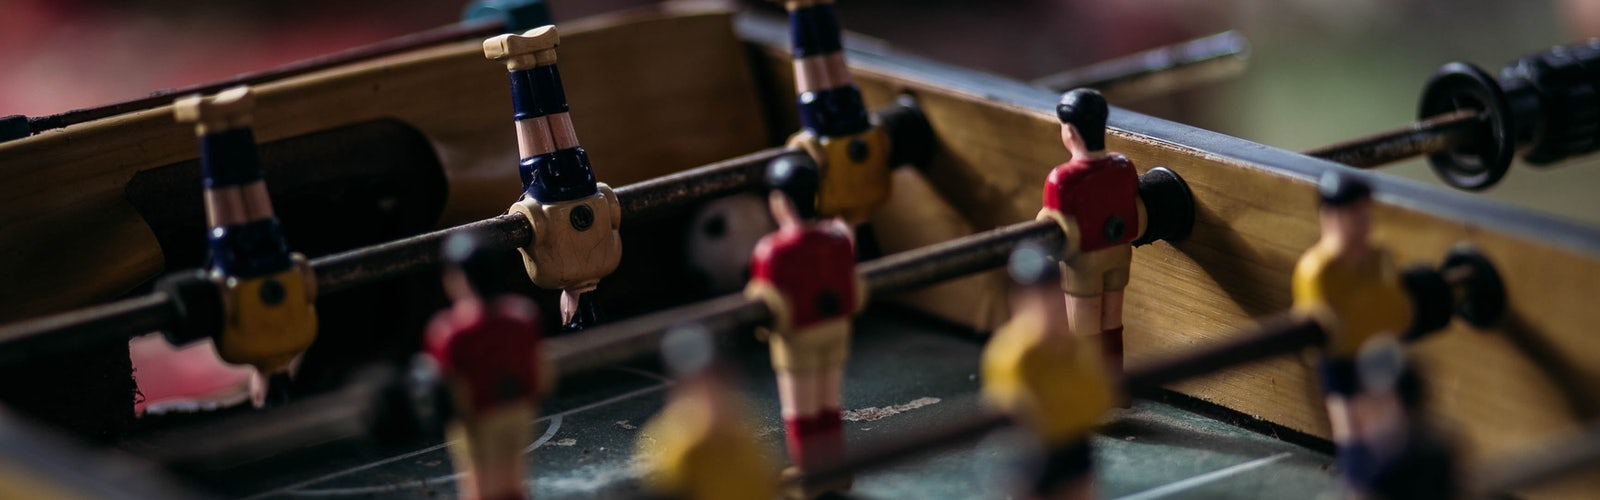 Close up photography of table football 2306897